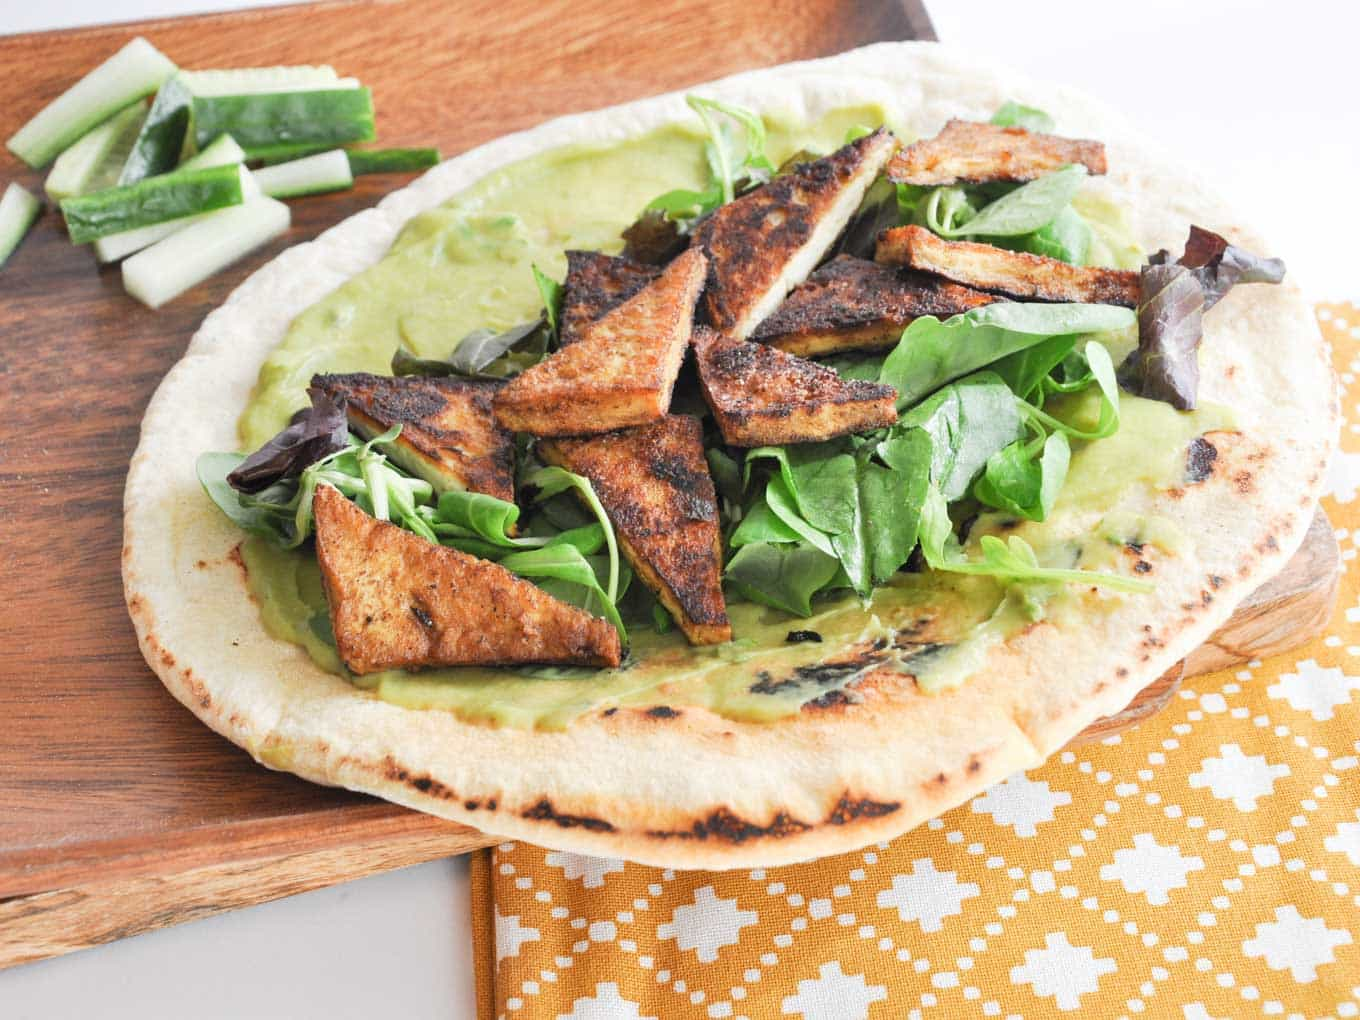 Crispy Tofu Wrap with Homemade Tortillas & Avocado Mayo ...